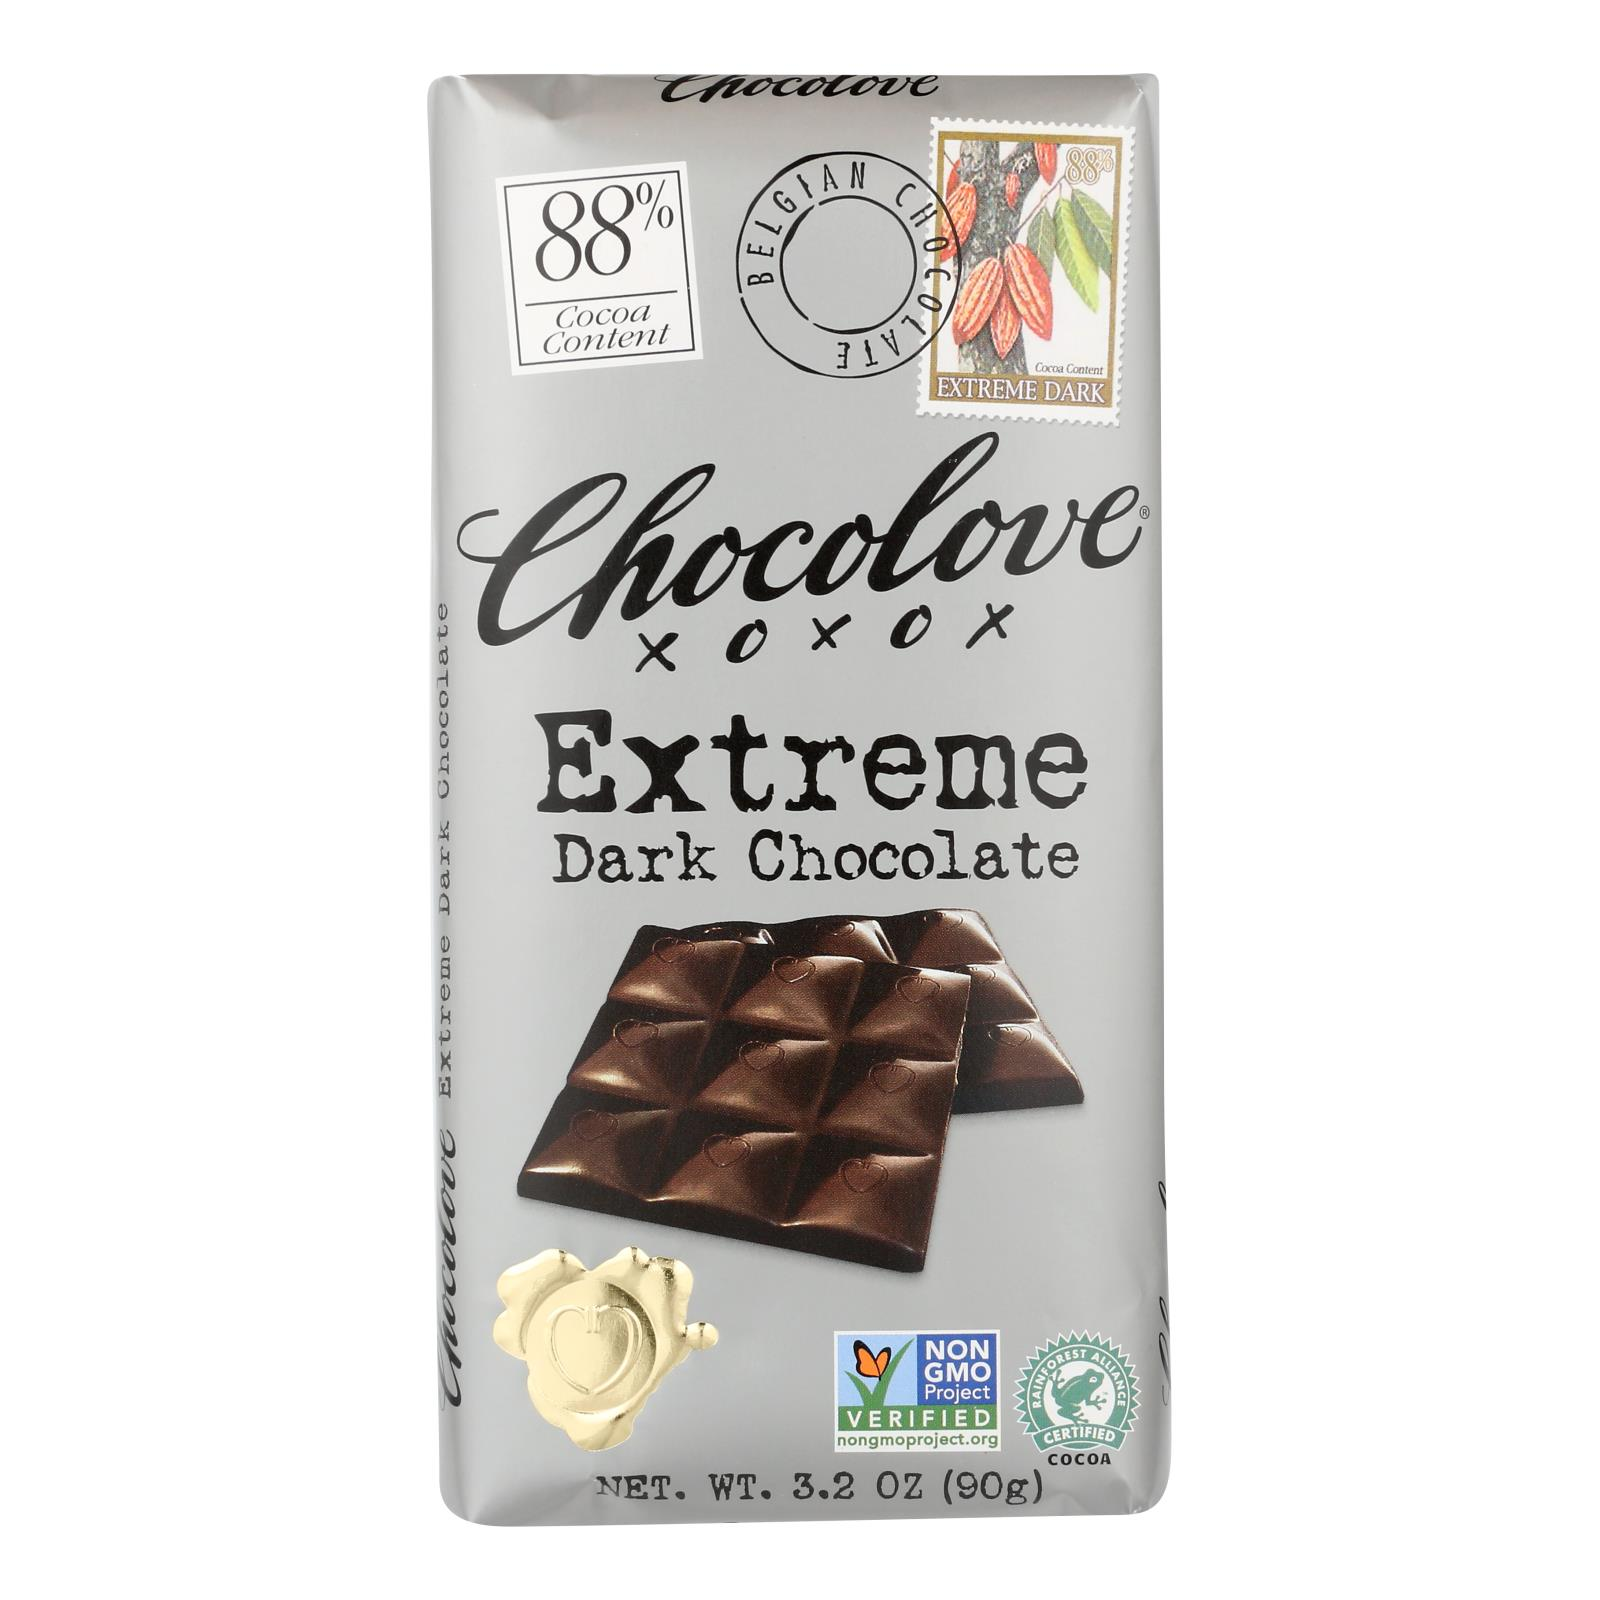 Chocolove Xoxox - Dark Chocolate Bar - Extreme - Case of 12 - 3.2 oz